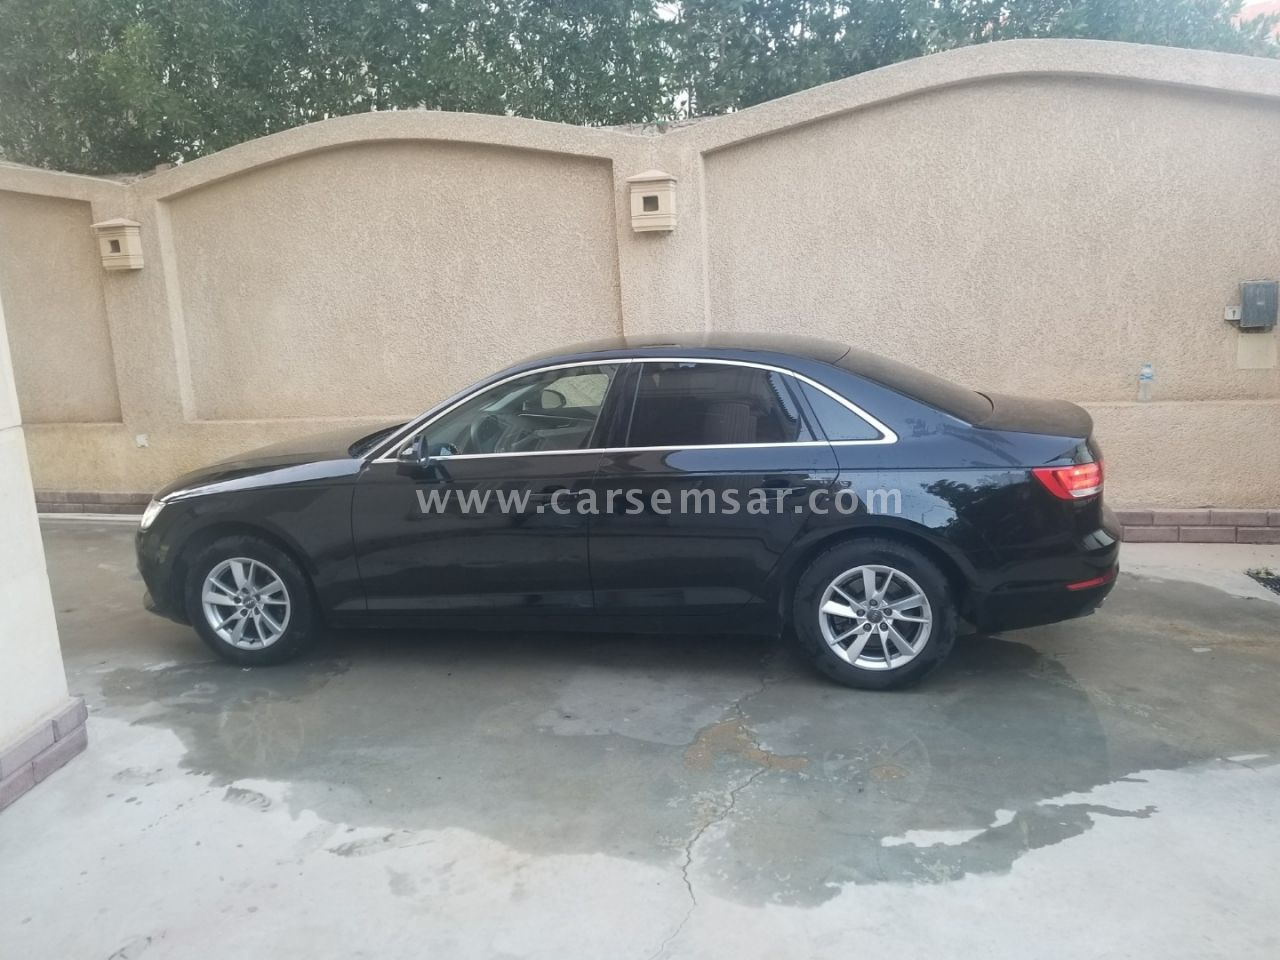 2017 Audi A4 2 0 For Sale In Egypt New And Used Cars For Sale In Egypt